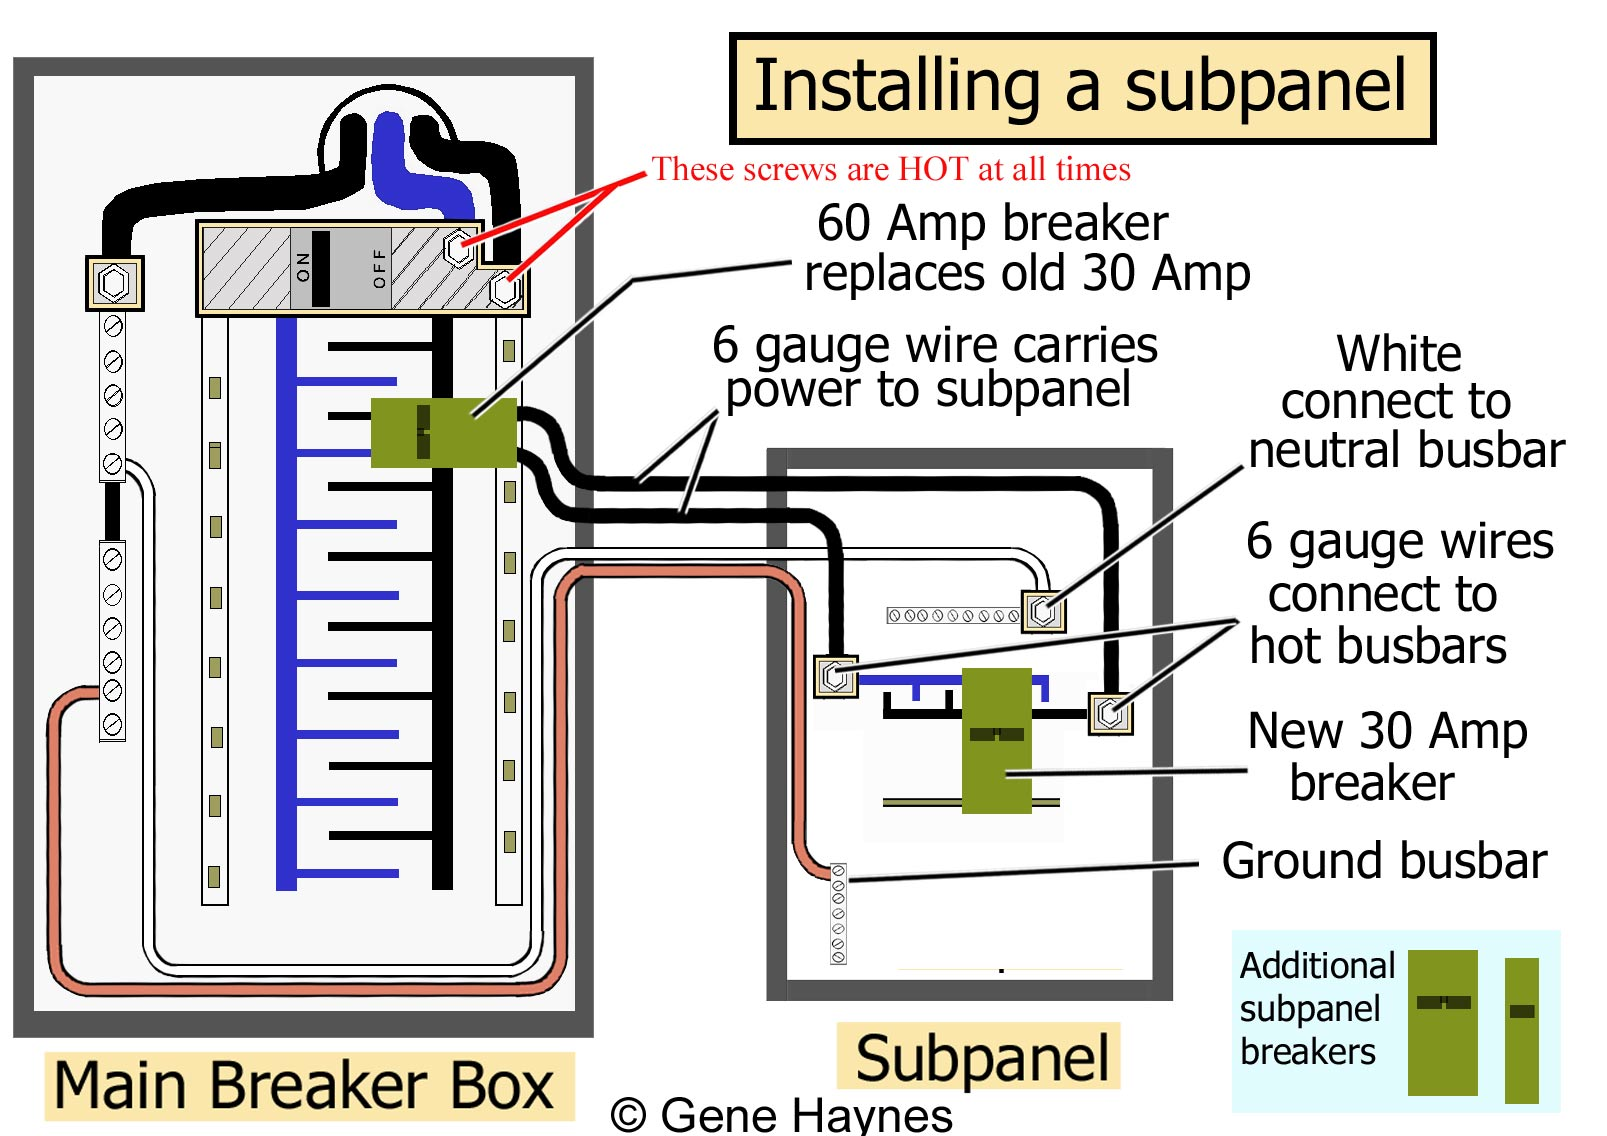 Wiring diagram for 60 amp subpanel 100 amp sub panel wiring diagram how to install a subpanel how to install main lug off main sub panel wiring diagram keyboard keysfo Image collections